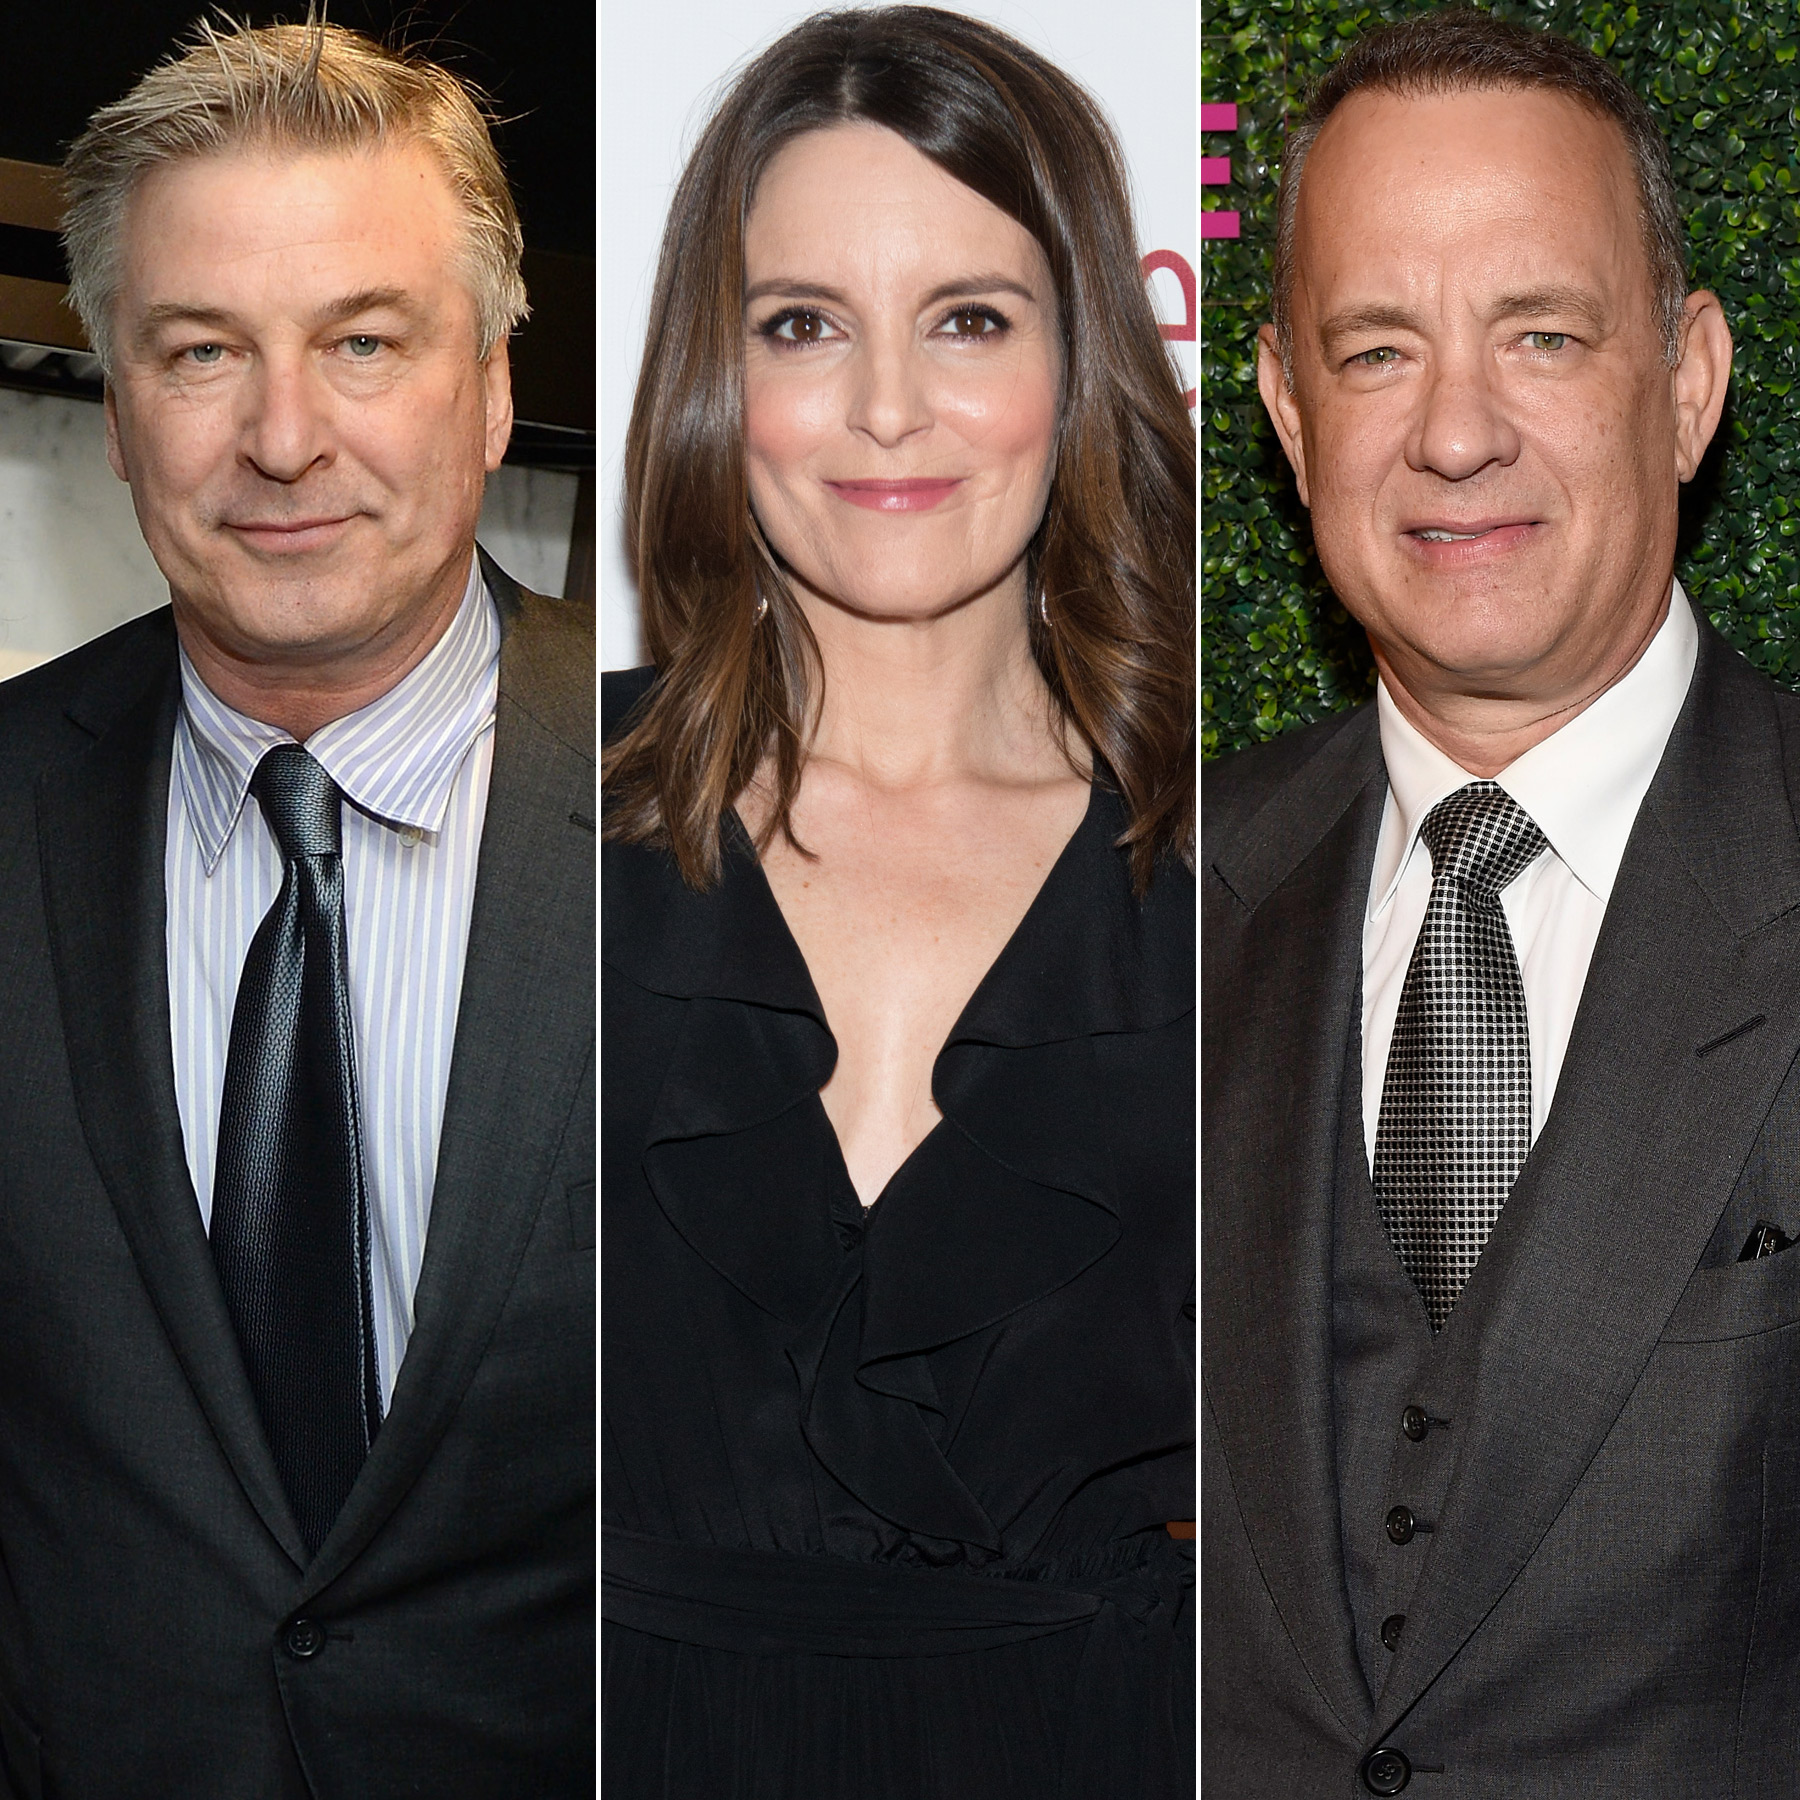 Alec Baldwin, Tina Fey and Tom Hanks